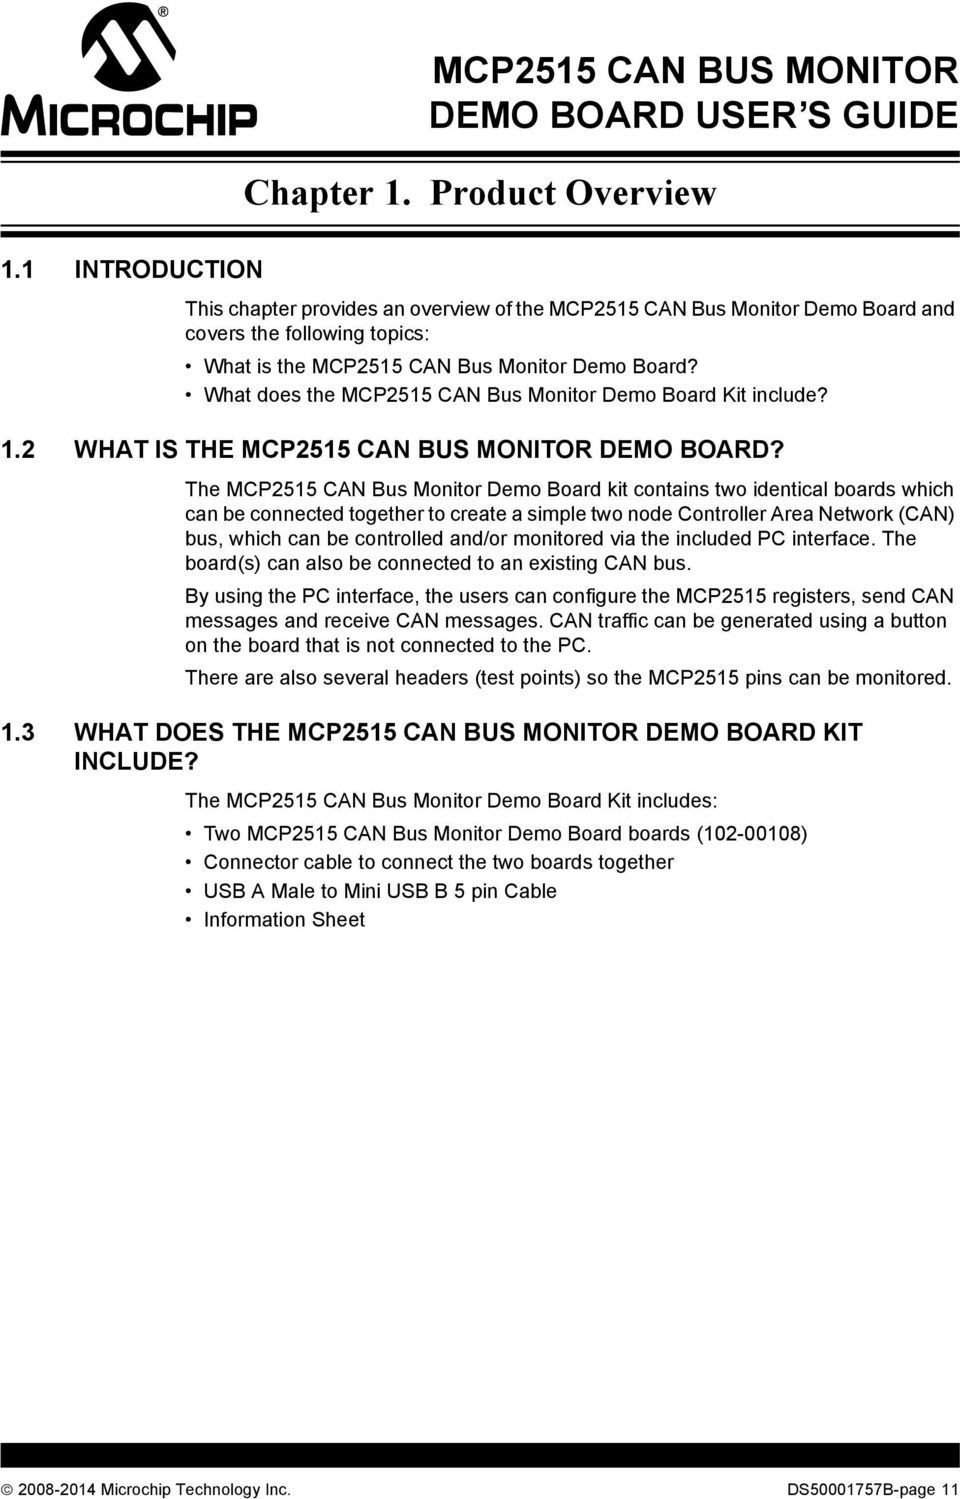 MCP2515 CAN Bus Monitor Demo Board User s Guide - PDF